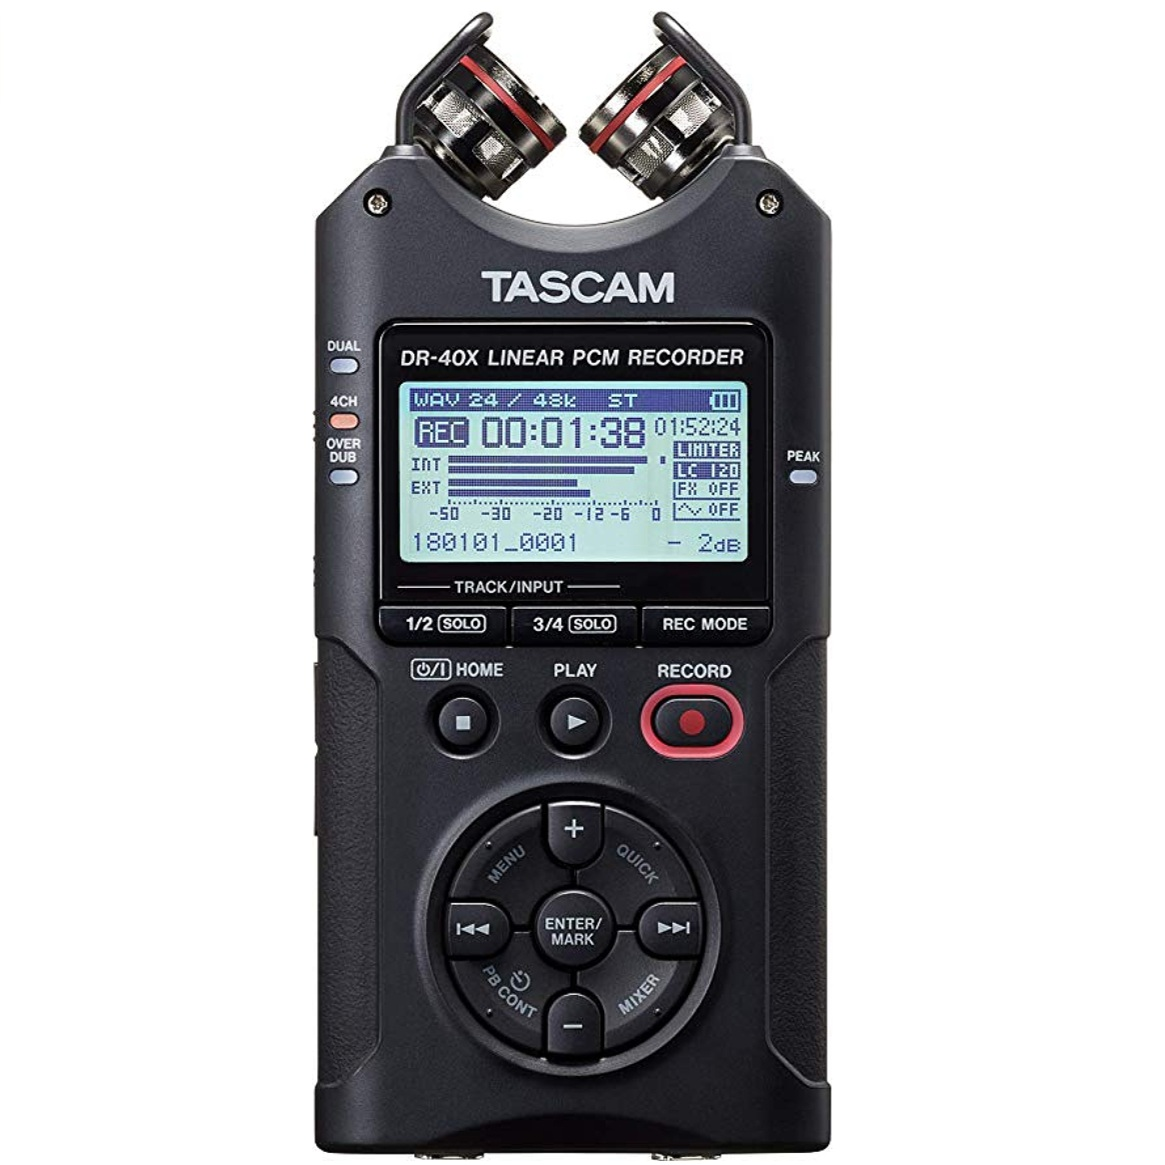 Tascam Sound Recorder